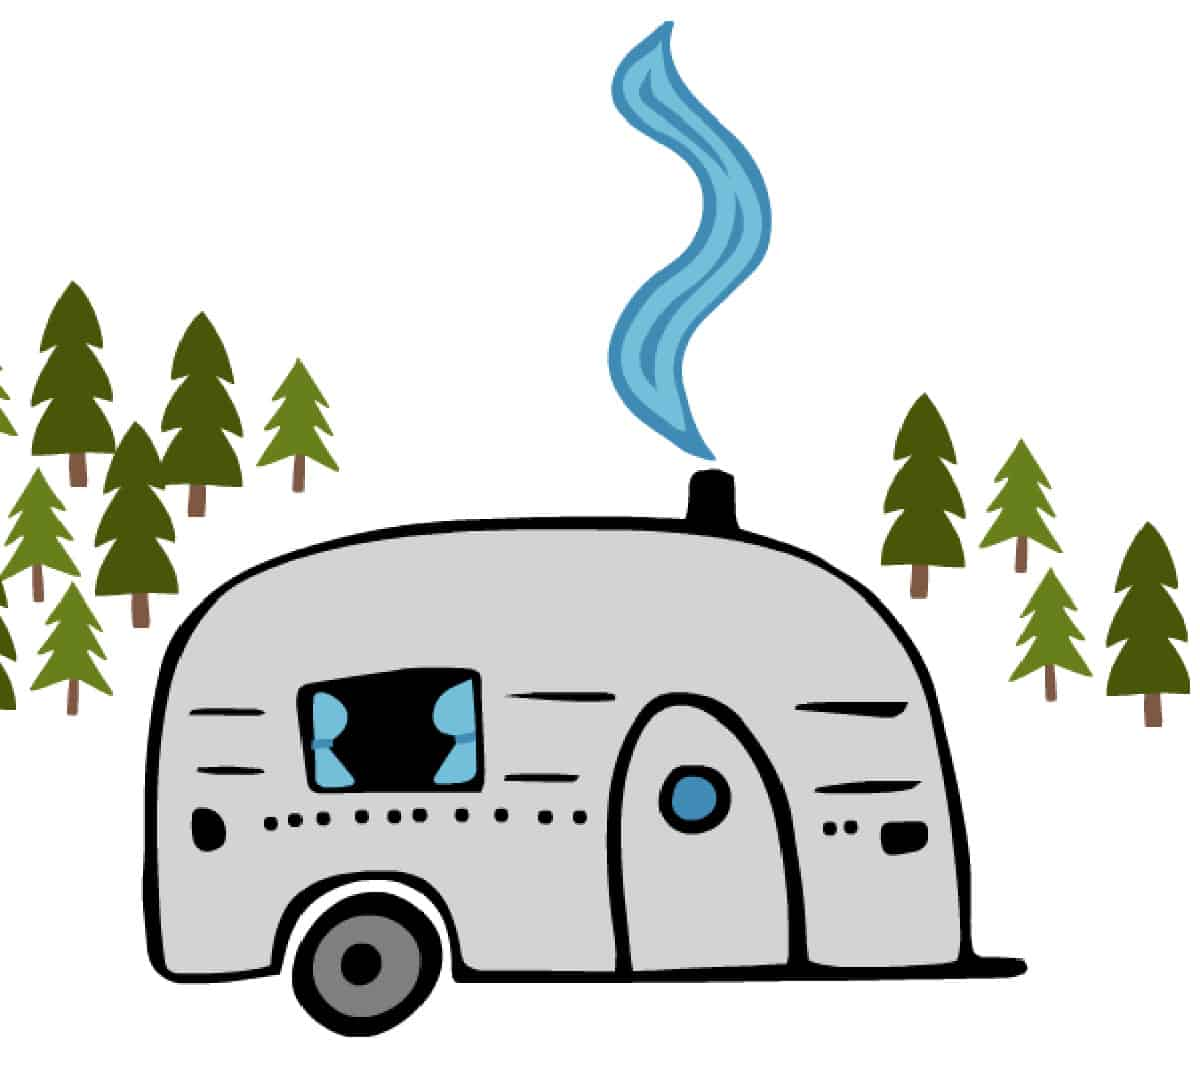 graphic with RV and pine trees